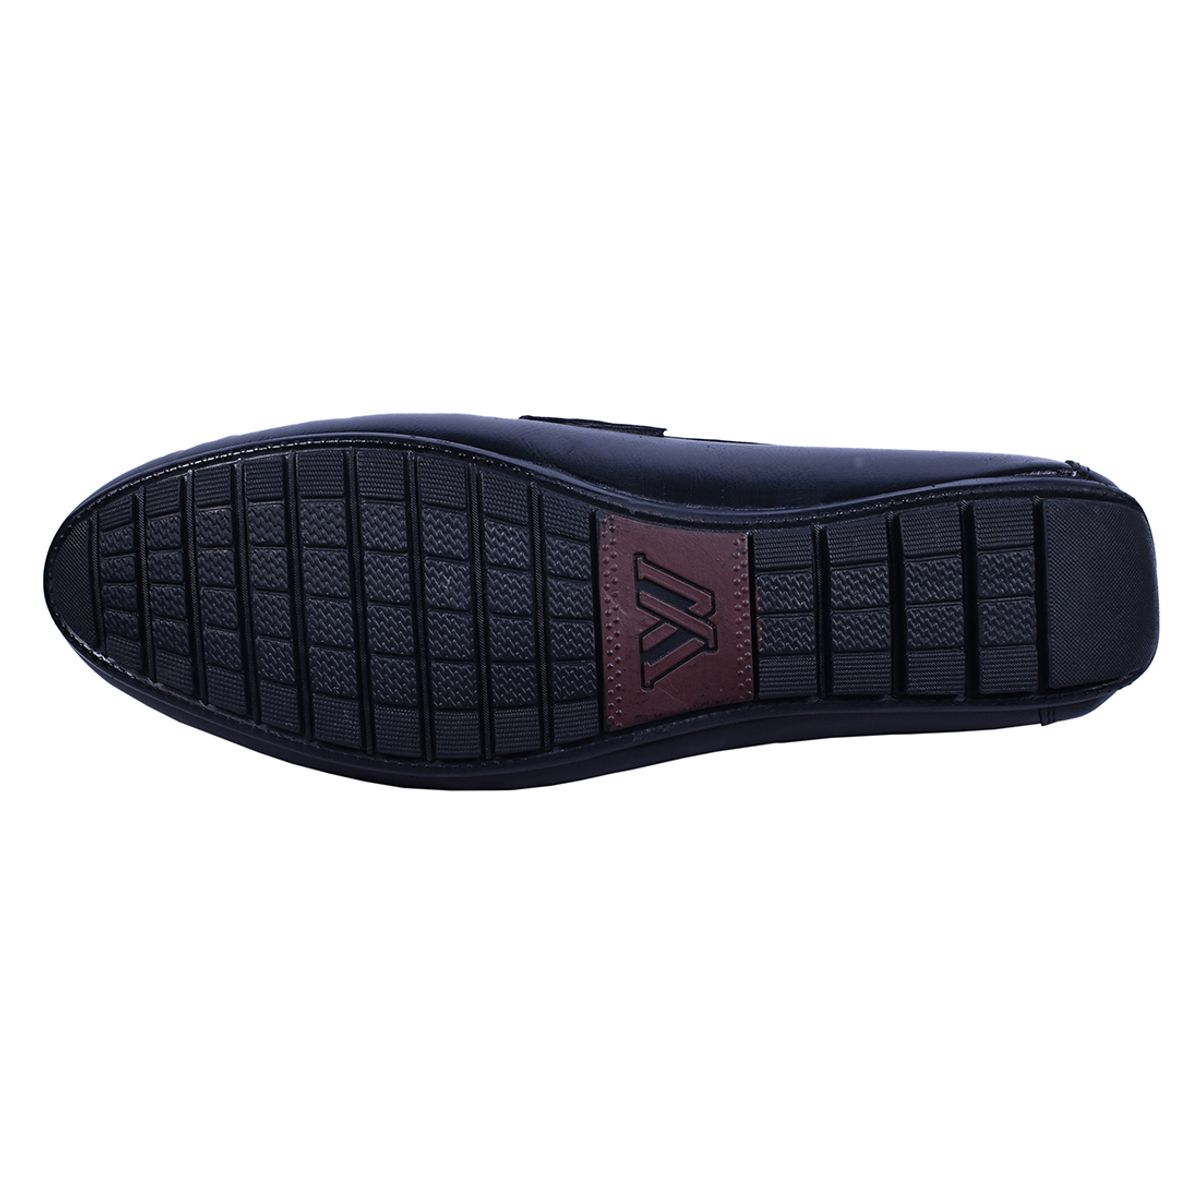 Messi Black Party Loafers